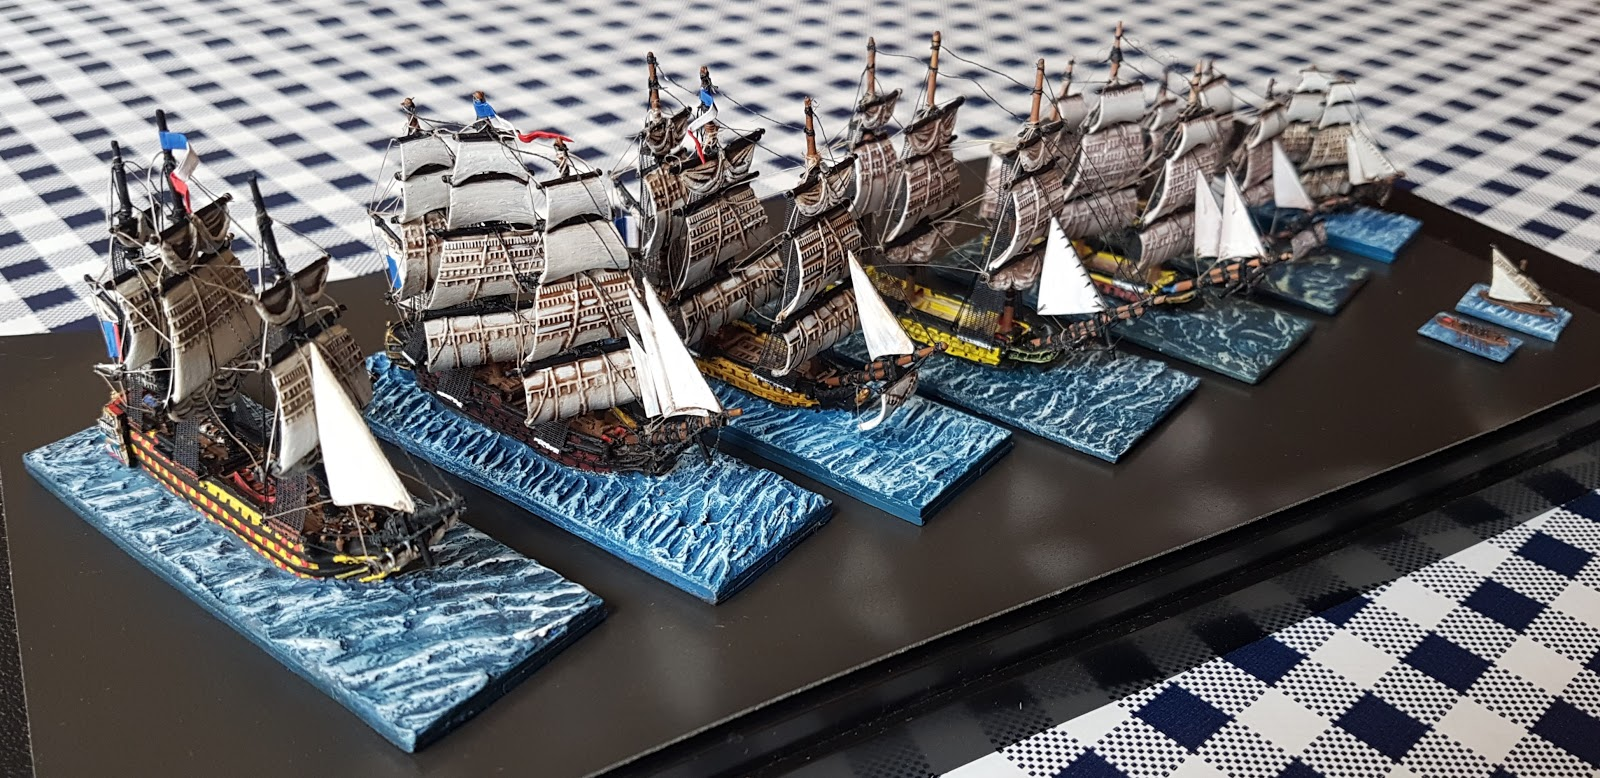 120 Gun French Napoleonic Ship 1     - Yith's Wargaming Blog